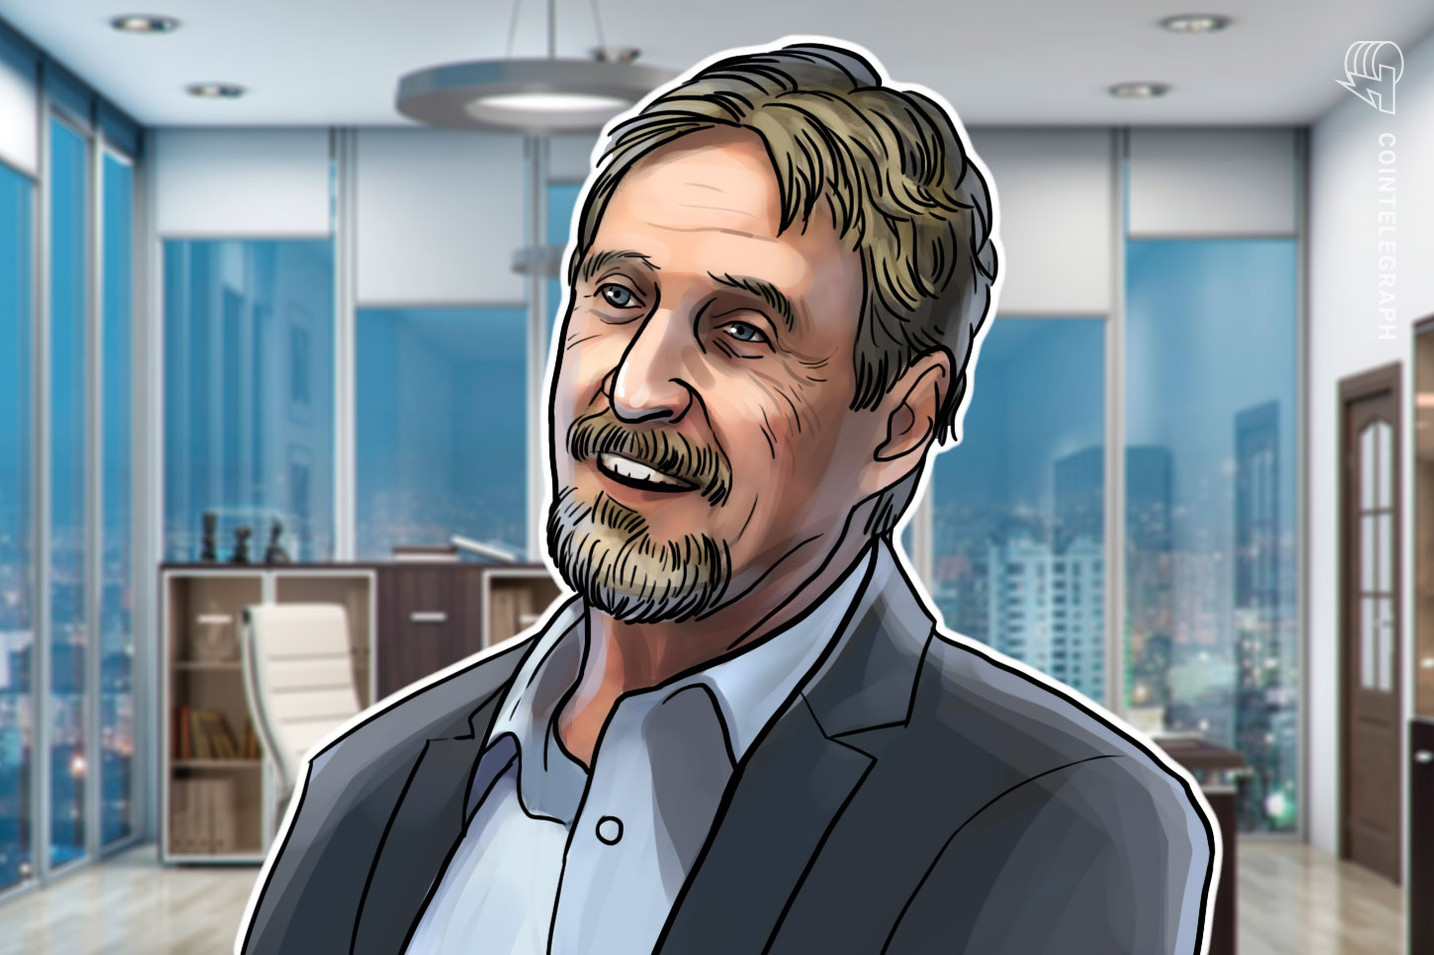 No One Knows What Will Happen With Fiat or Crypto — Buy Peanut Butter, Says McAfee